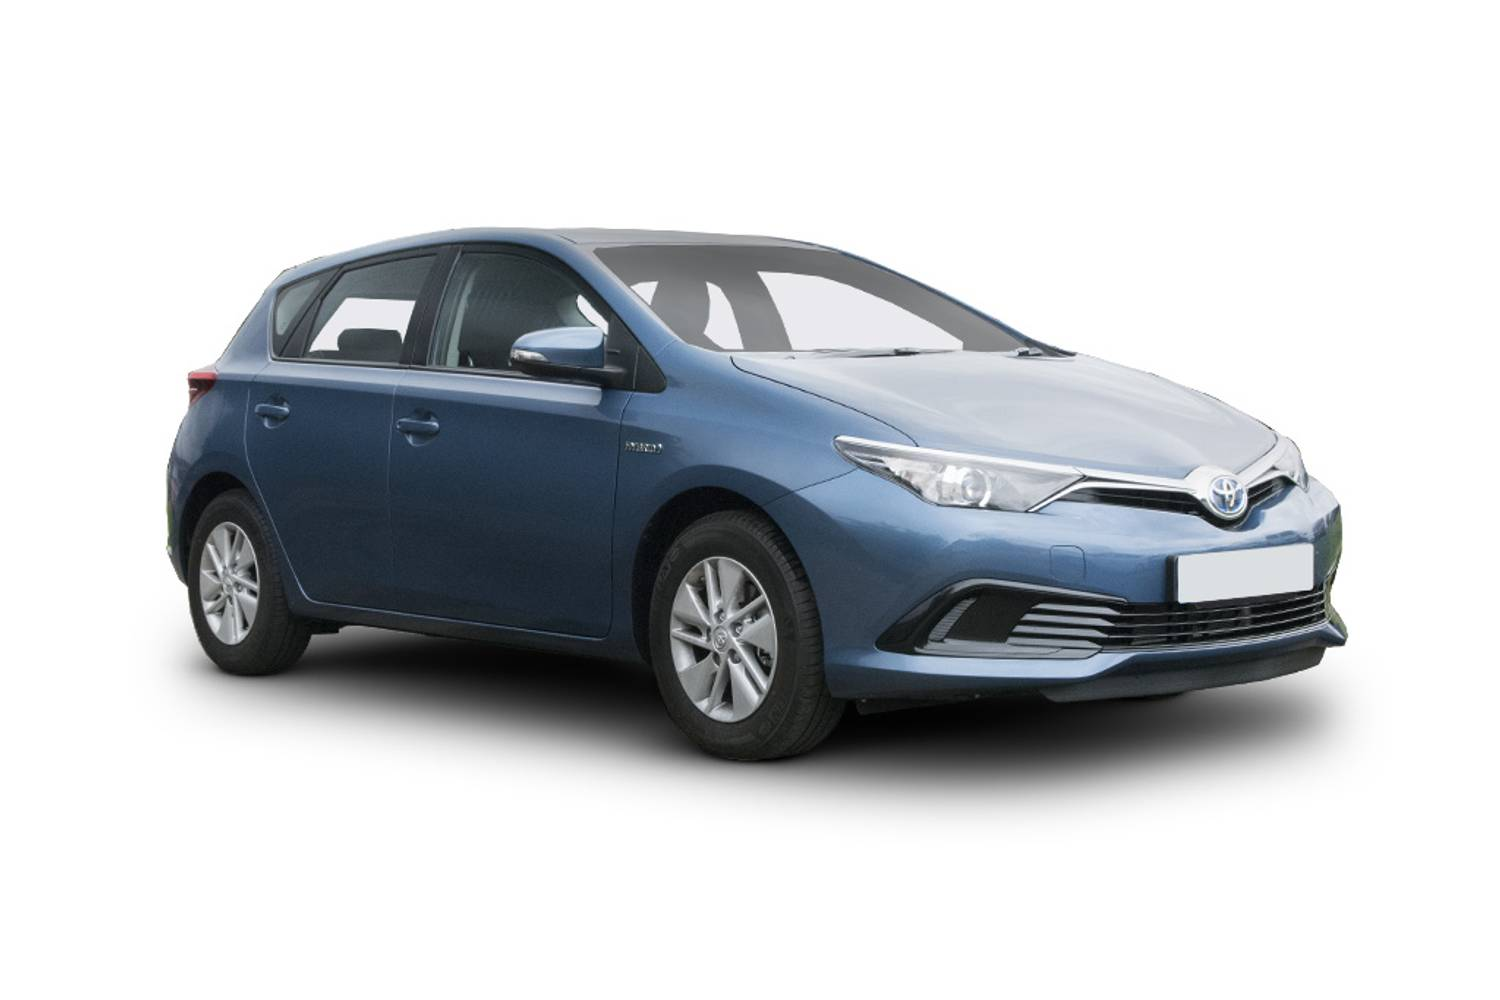 new toyota auris hatchback 1 8 hybrid excel tss 5 door cvt leather 2015 for sale. Black Bedroom Furniture Sets. Home Design Ideas